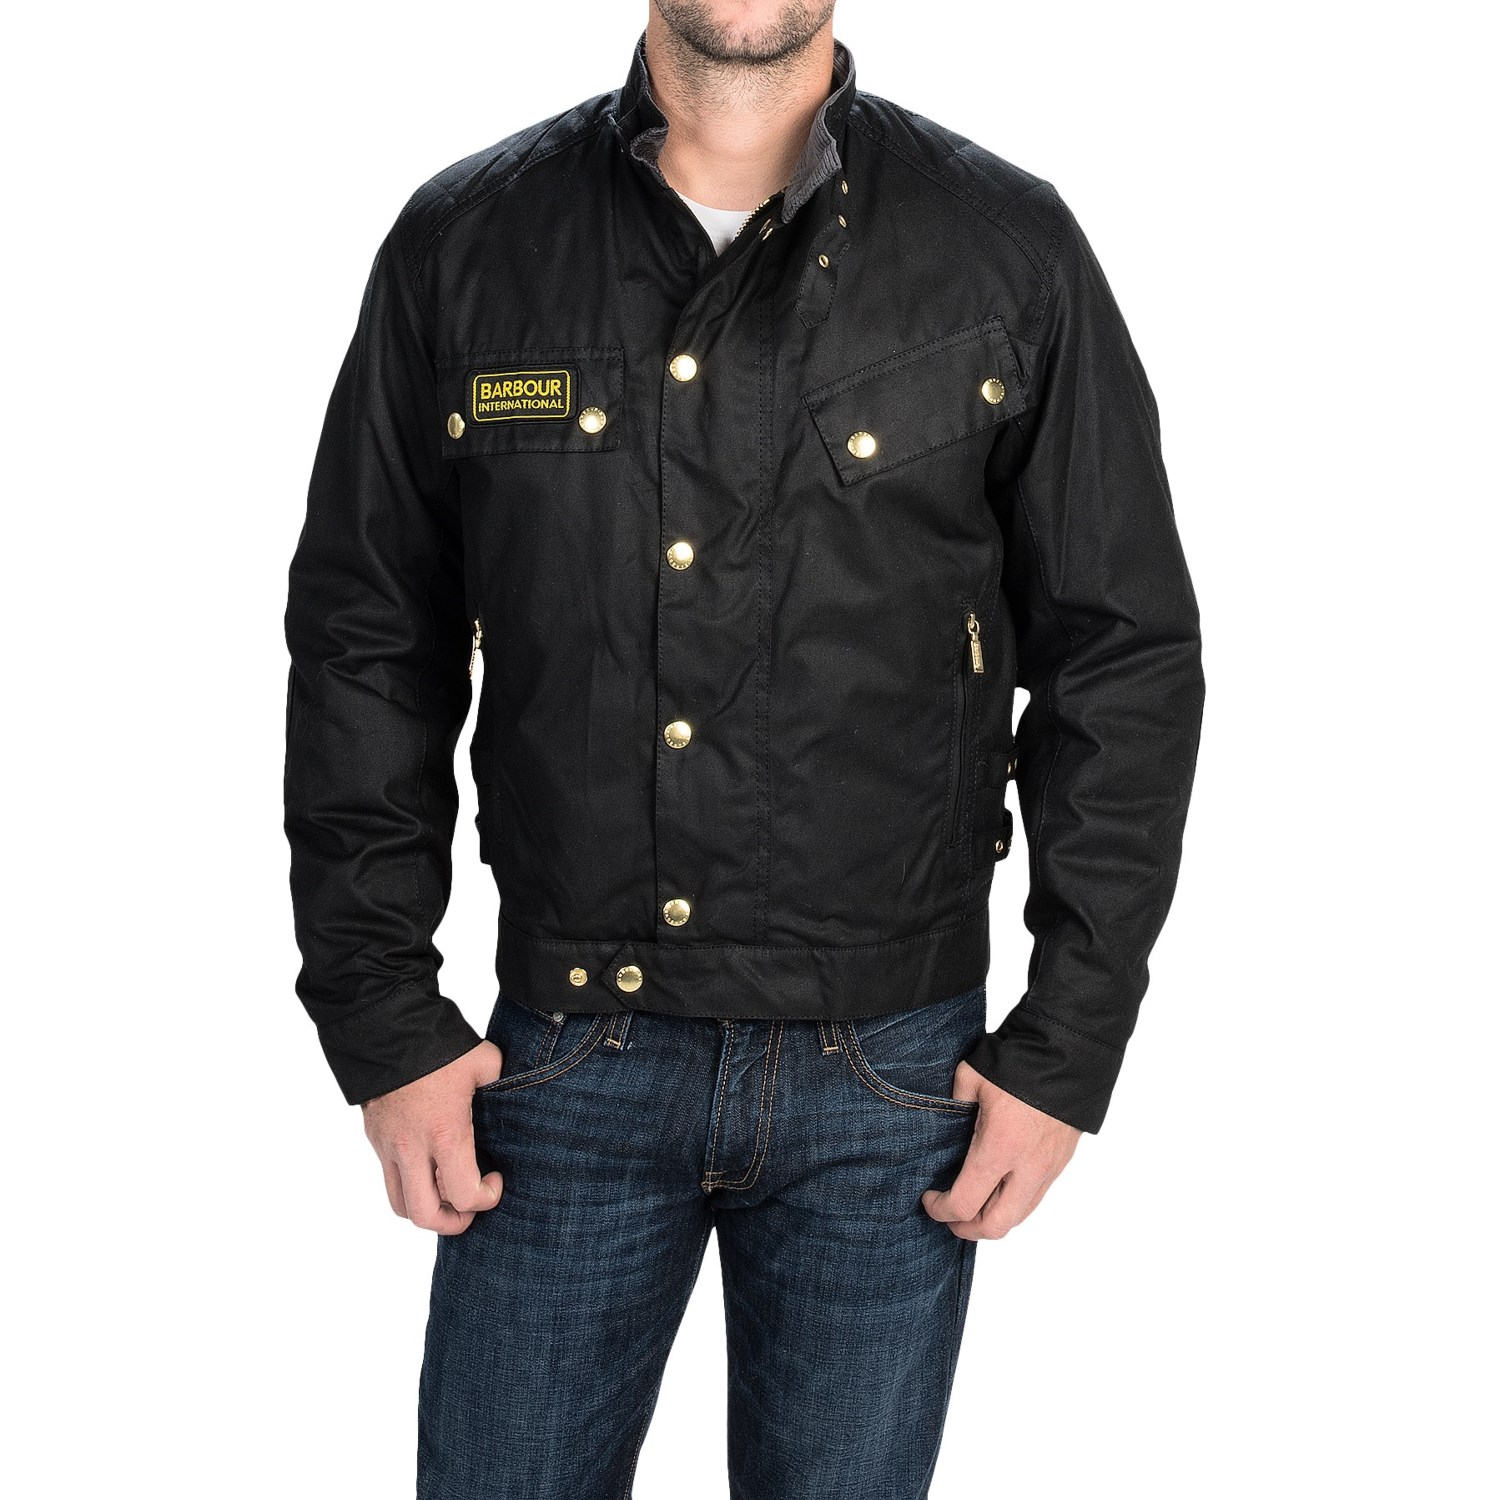 Barbour Quilted Motorcycle Jacket